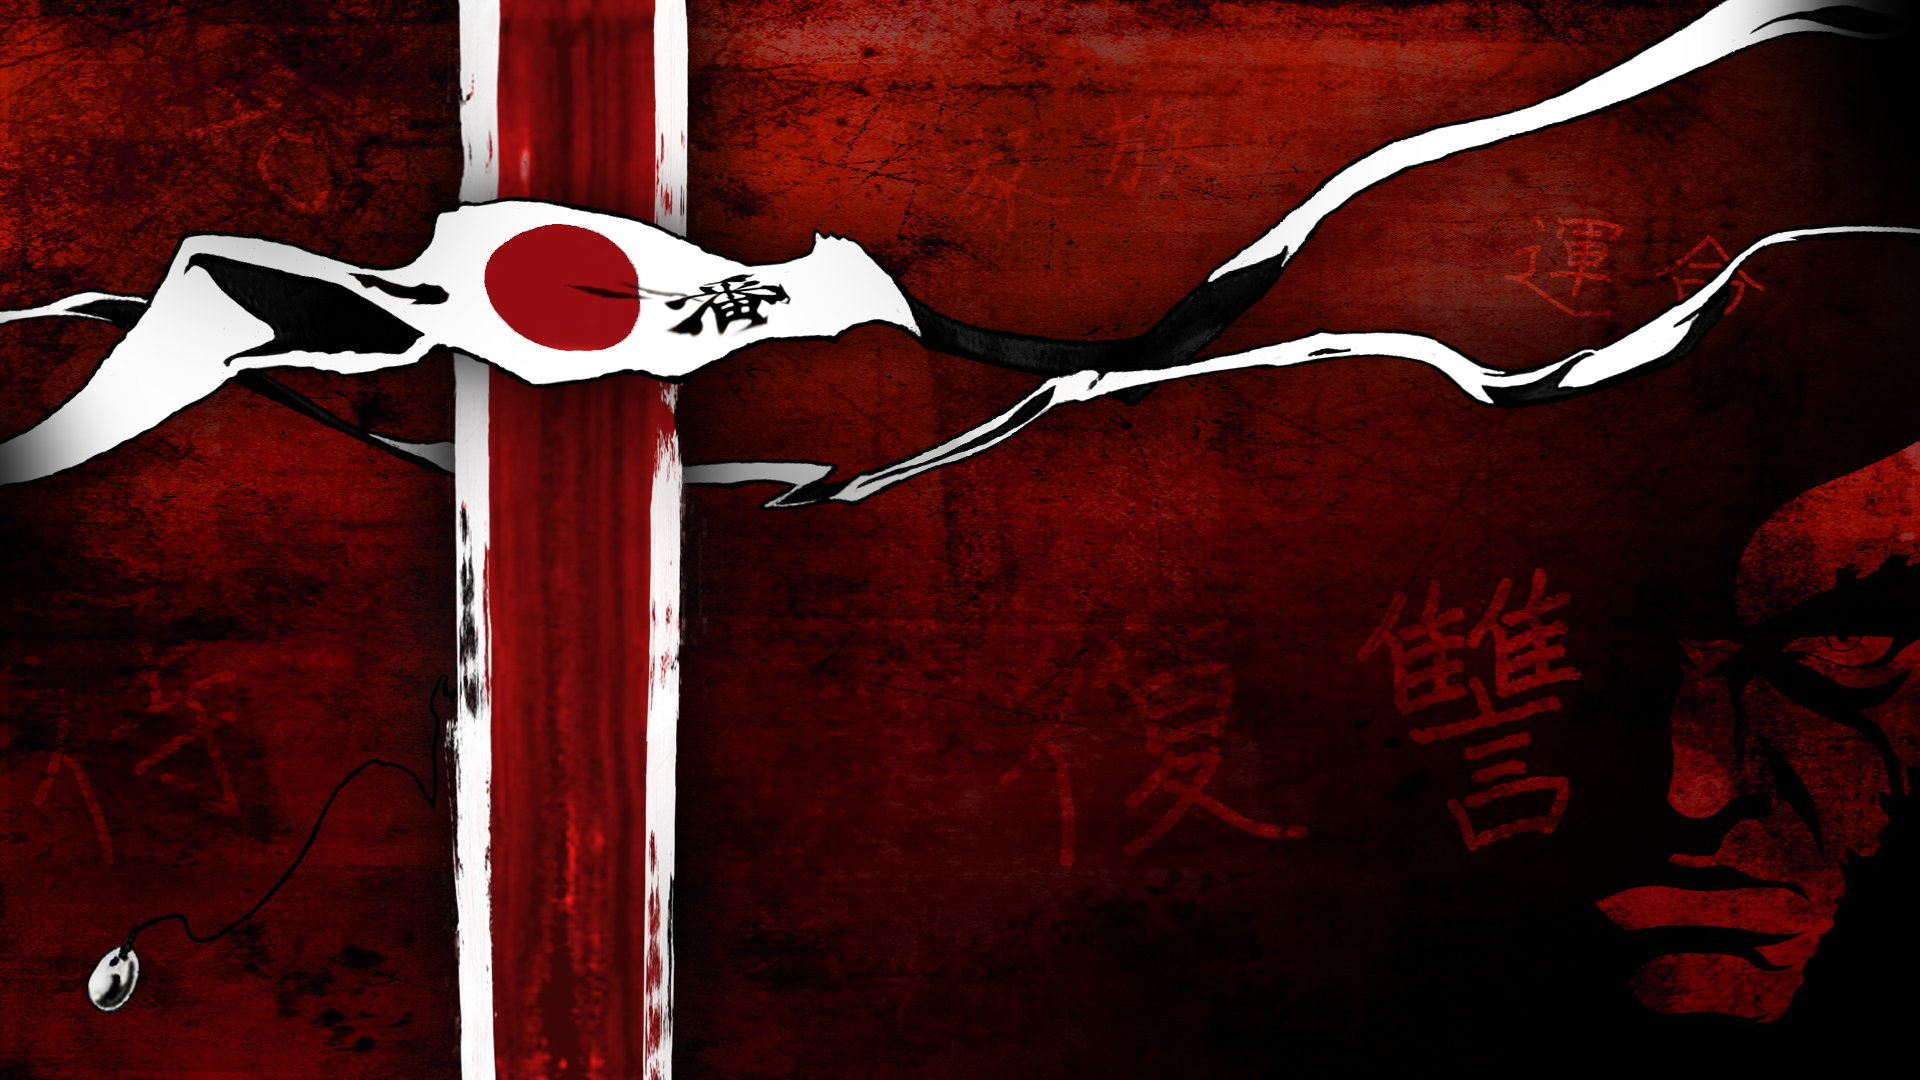 afro samurai wallpaper for ps3 by thedisappointment on